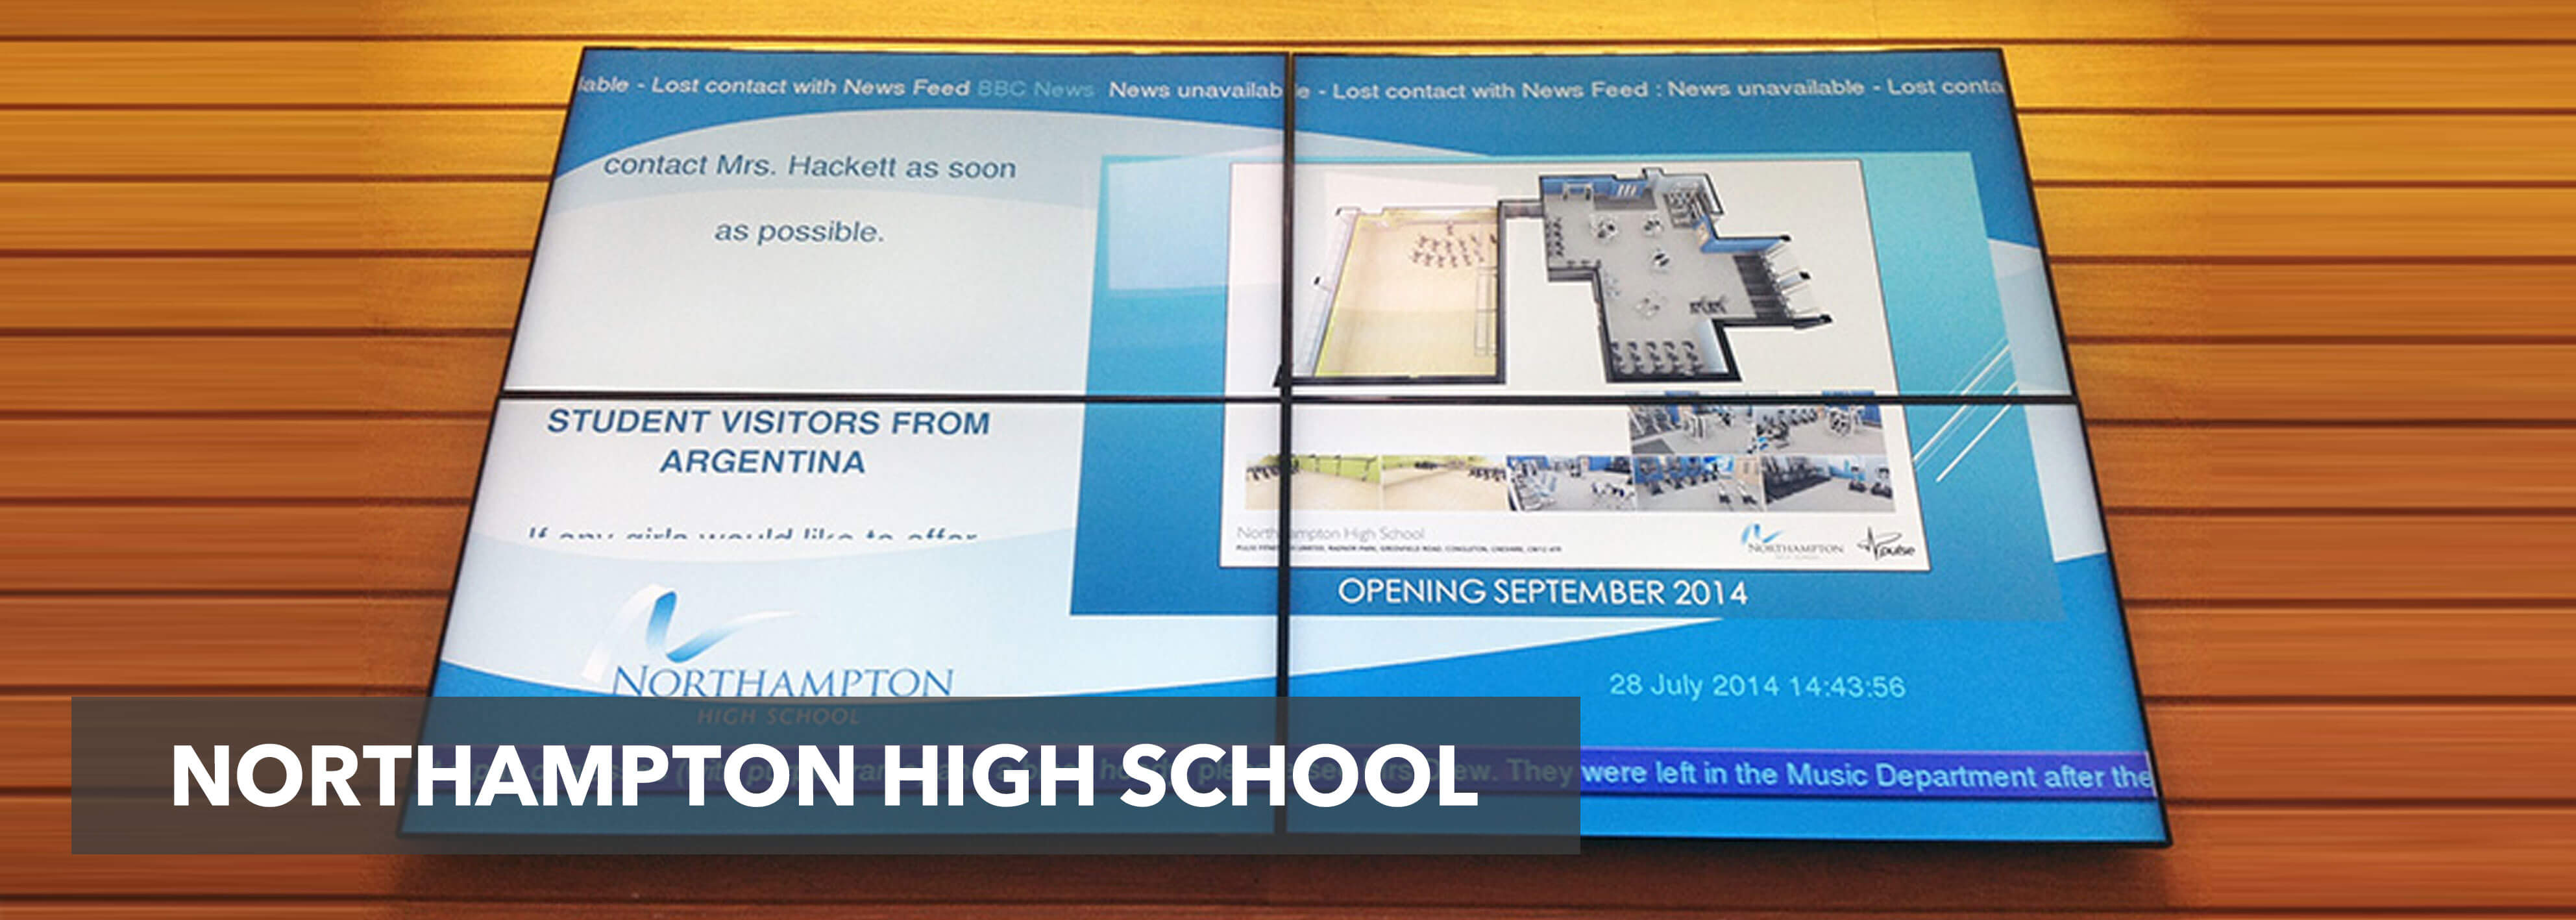 eclipse digital media digital signage video-walls-northampton-high-school